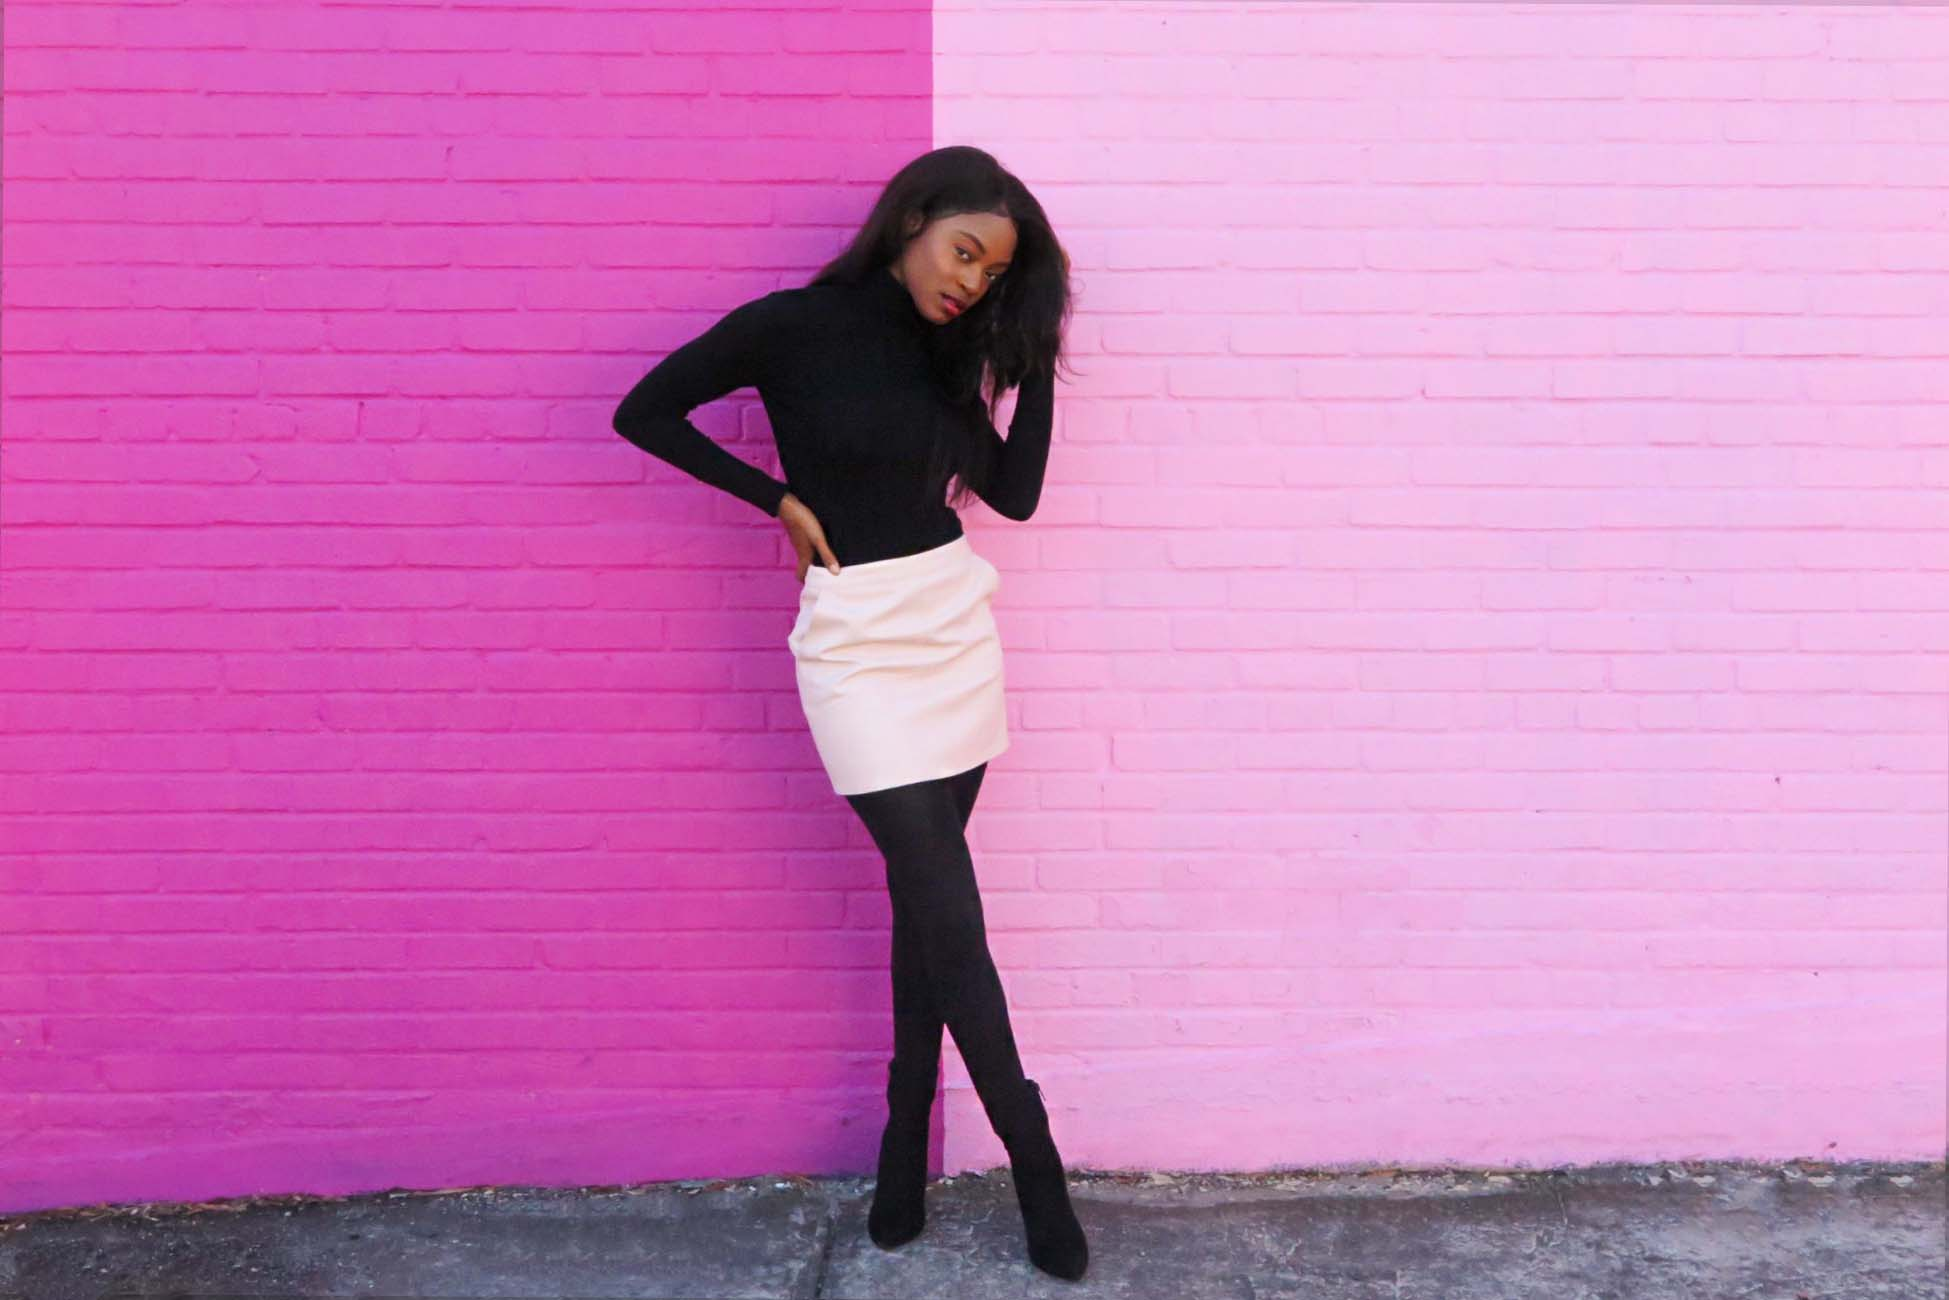 tanaye white in pink skirt